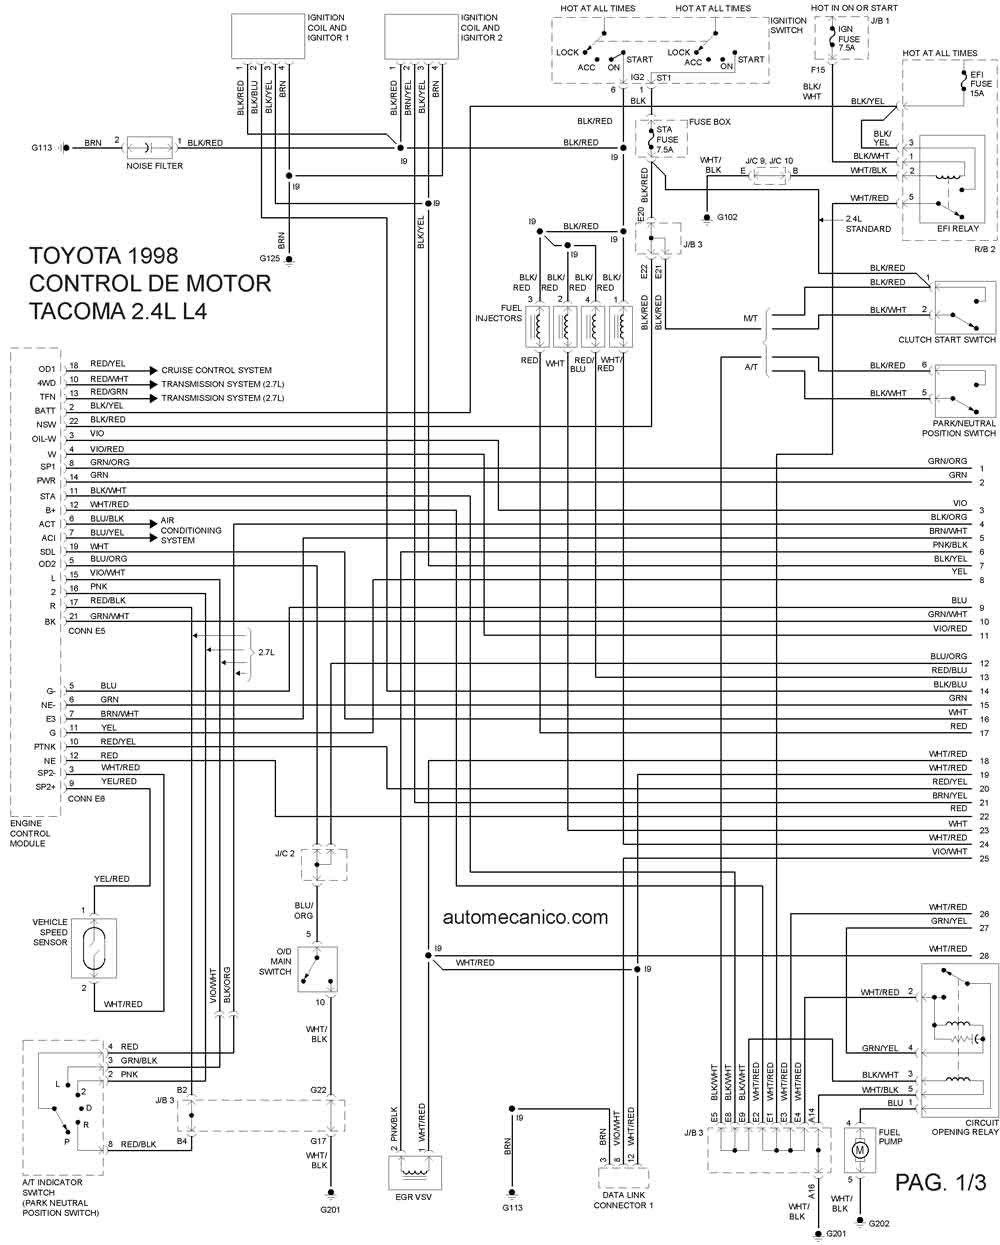 Toyota98007 on tacoma engine diagram